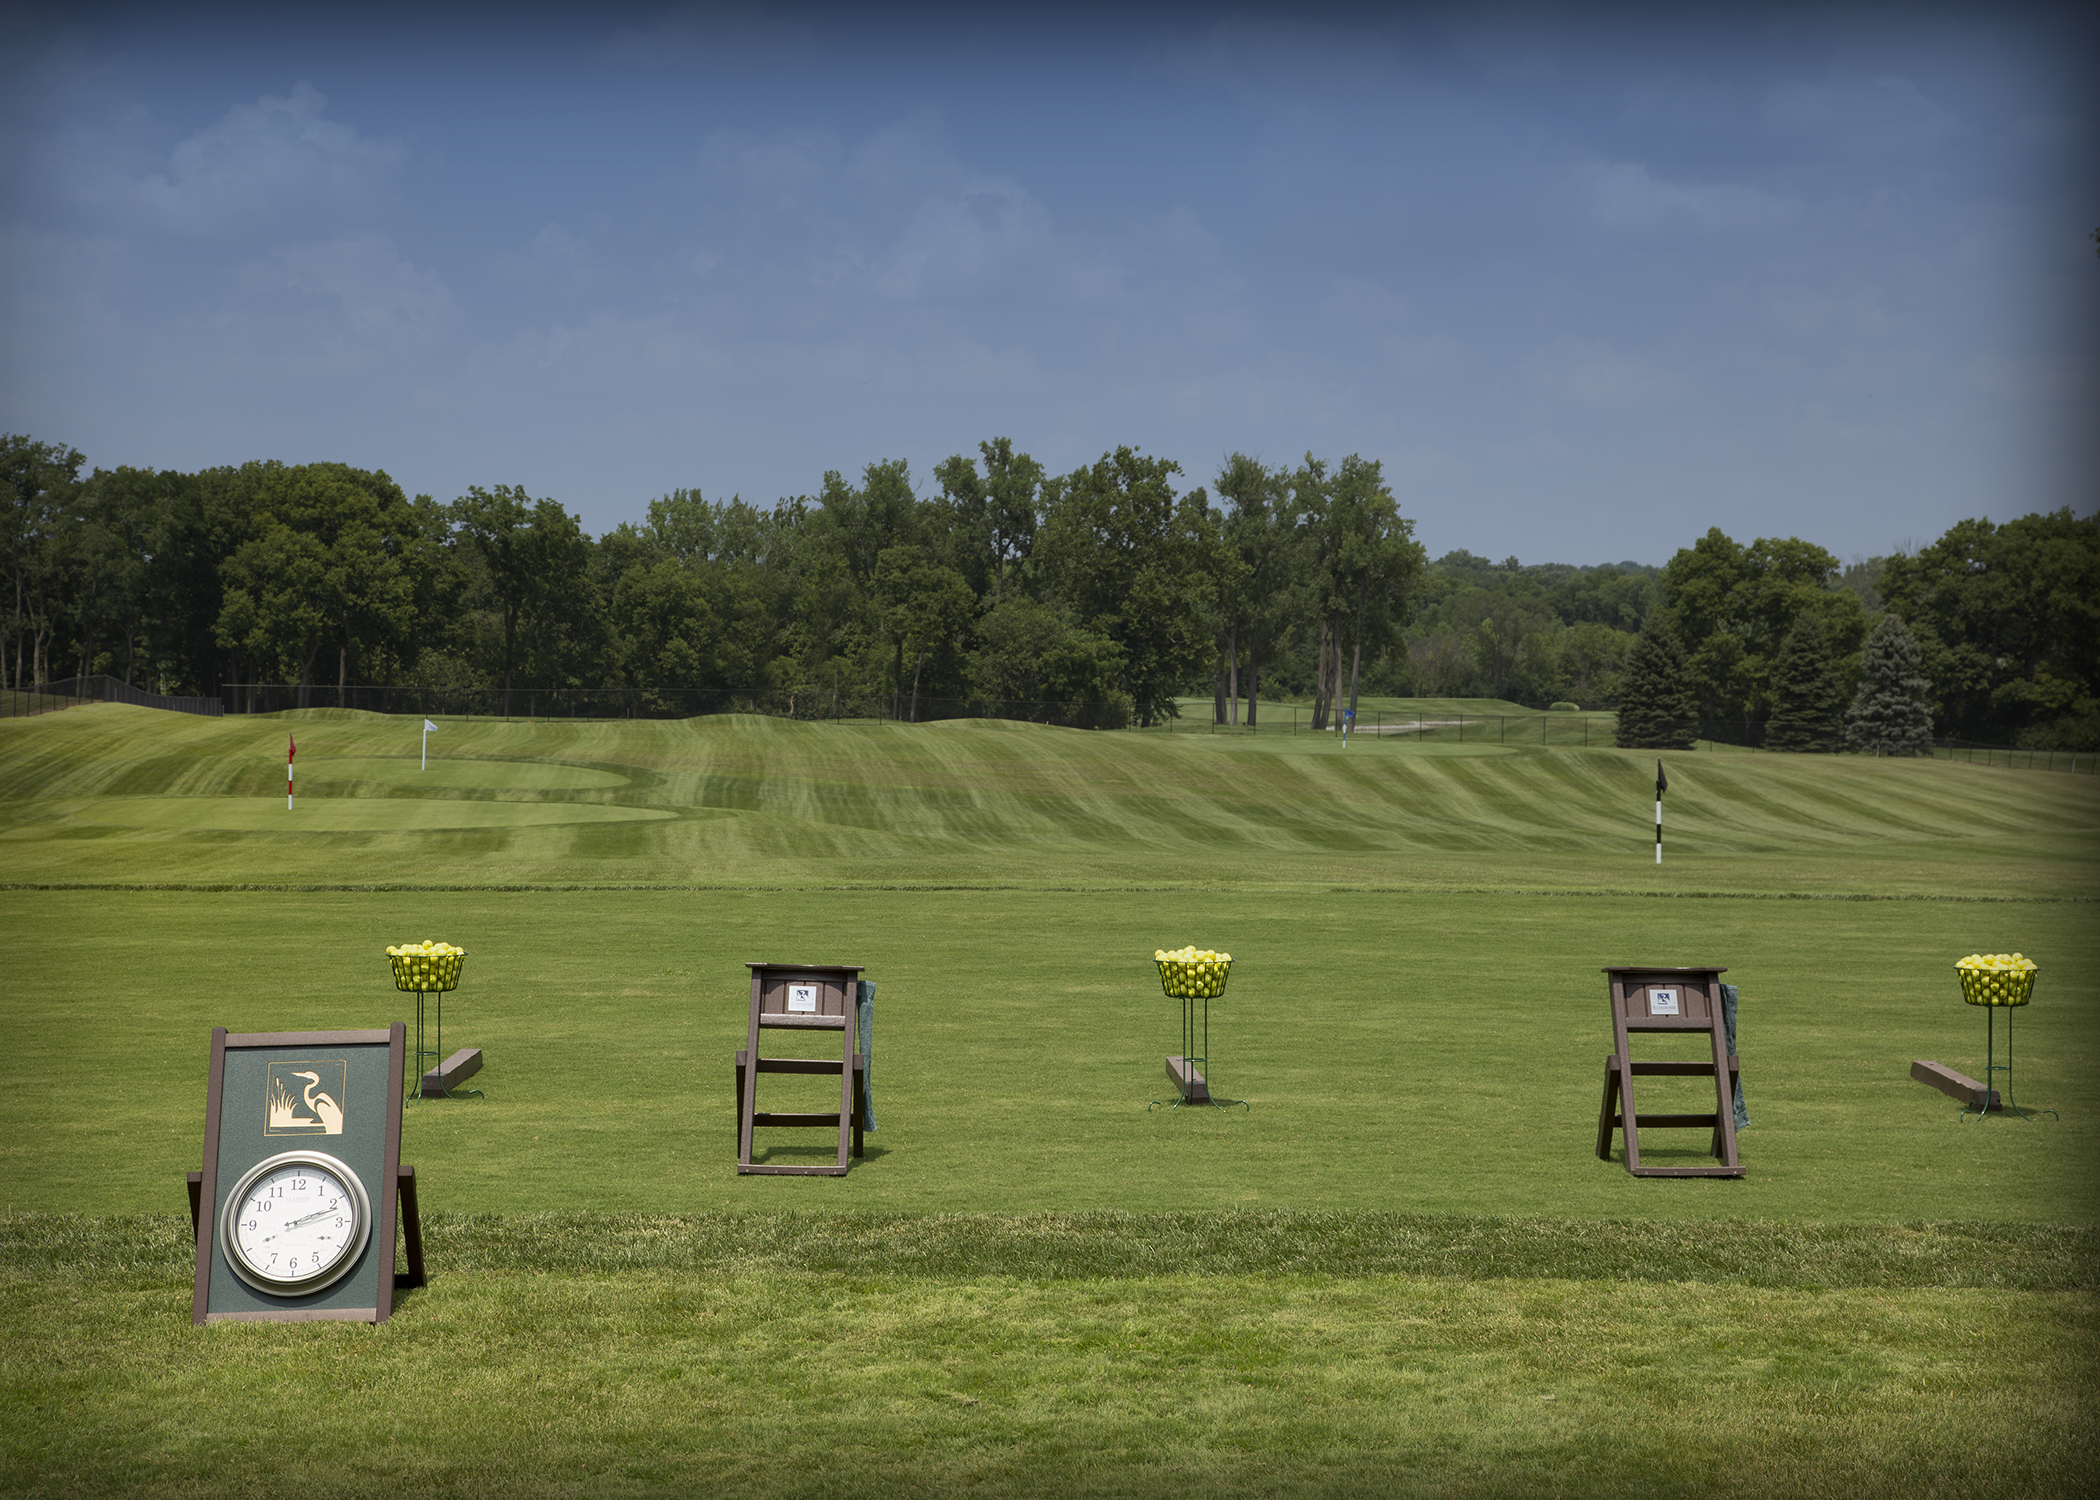 Heatherwoode's new range and practice facility